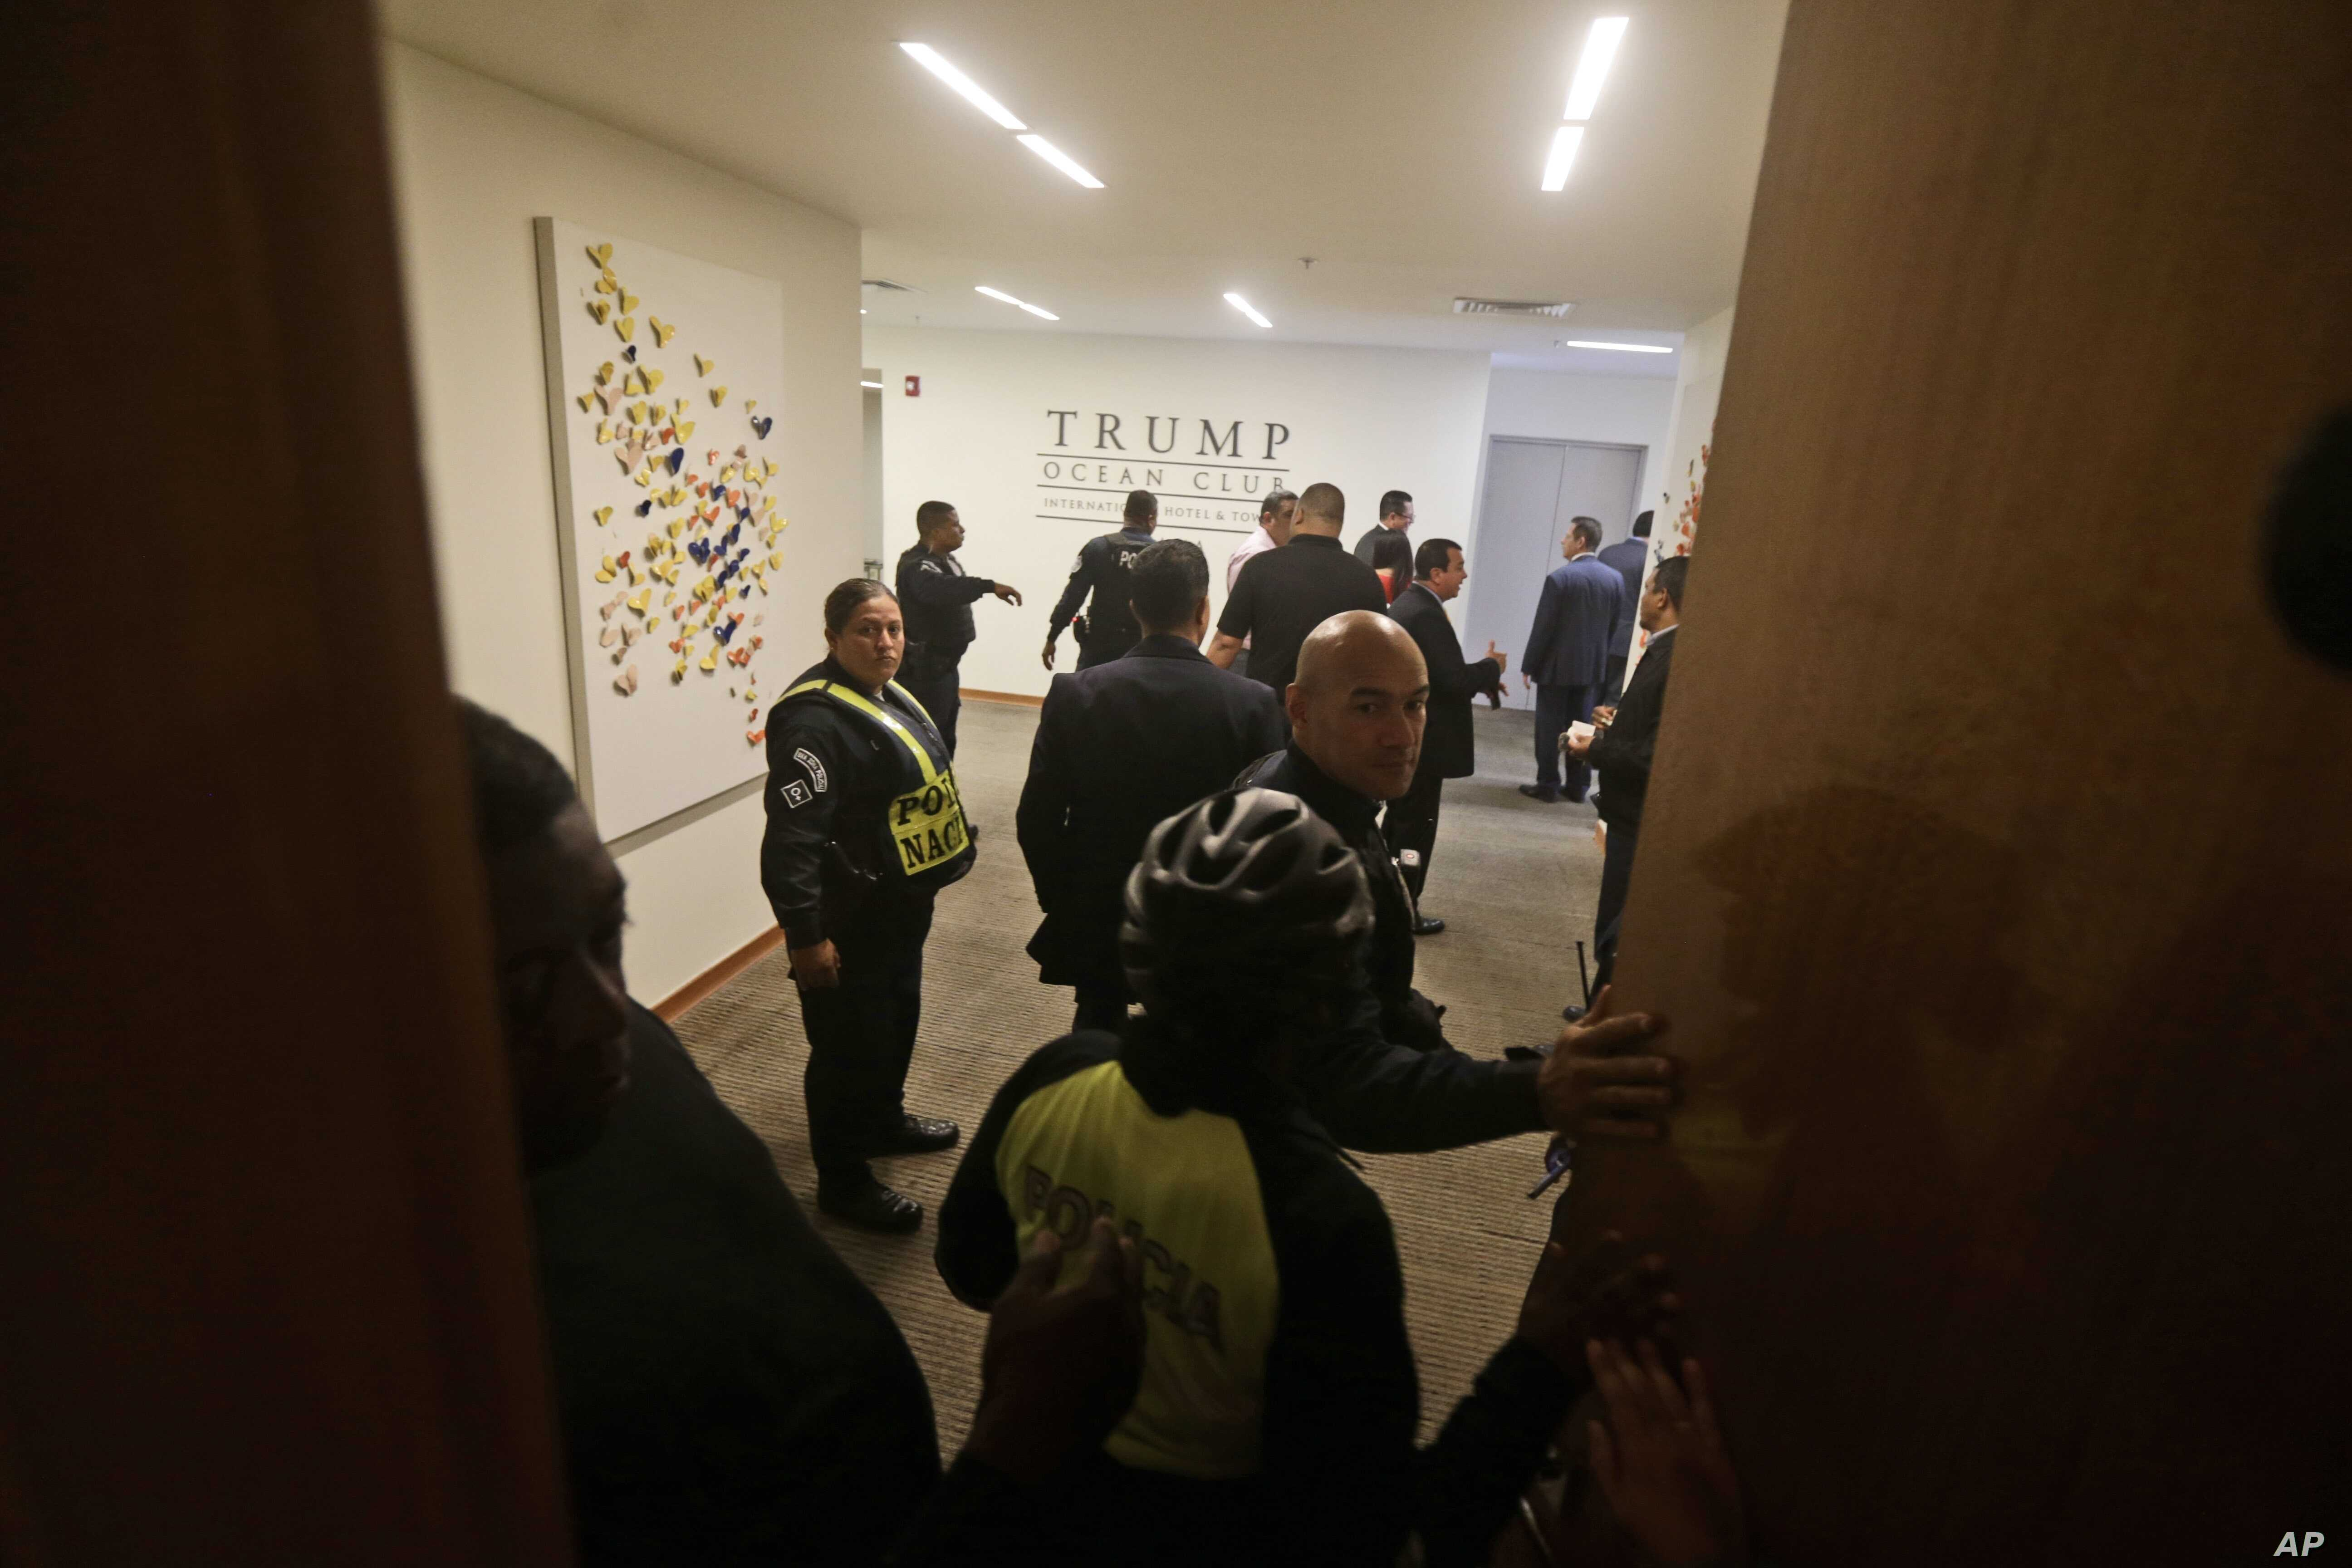 A group of Panamanian police officers stand inside the Trump Ocean Club International Hotel and Tower in Panama City, March 5, 2018.